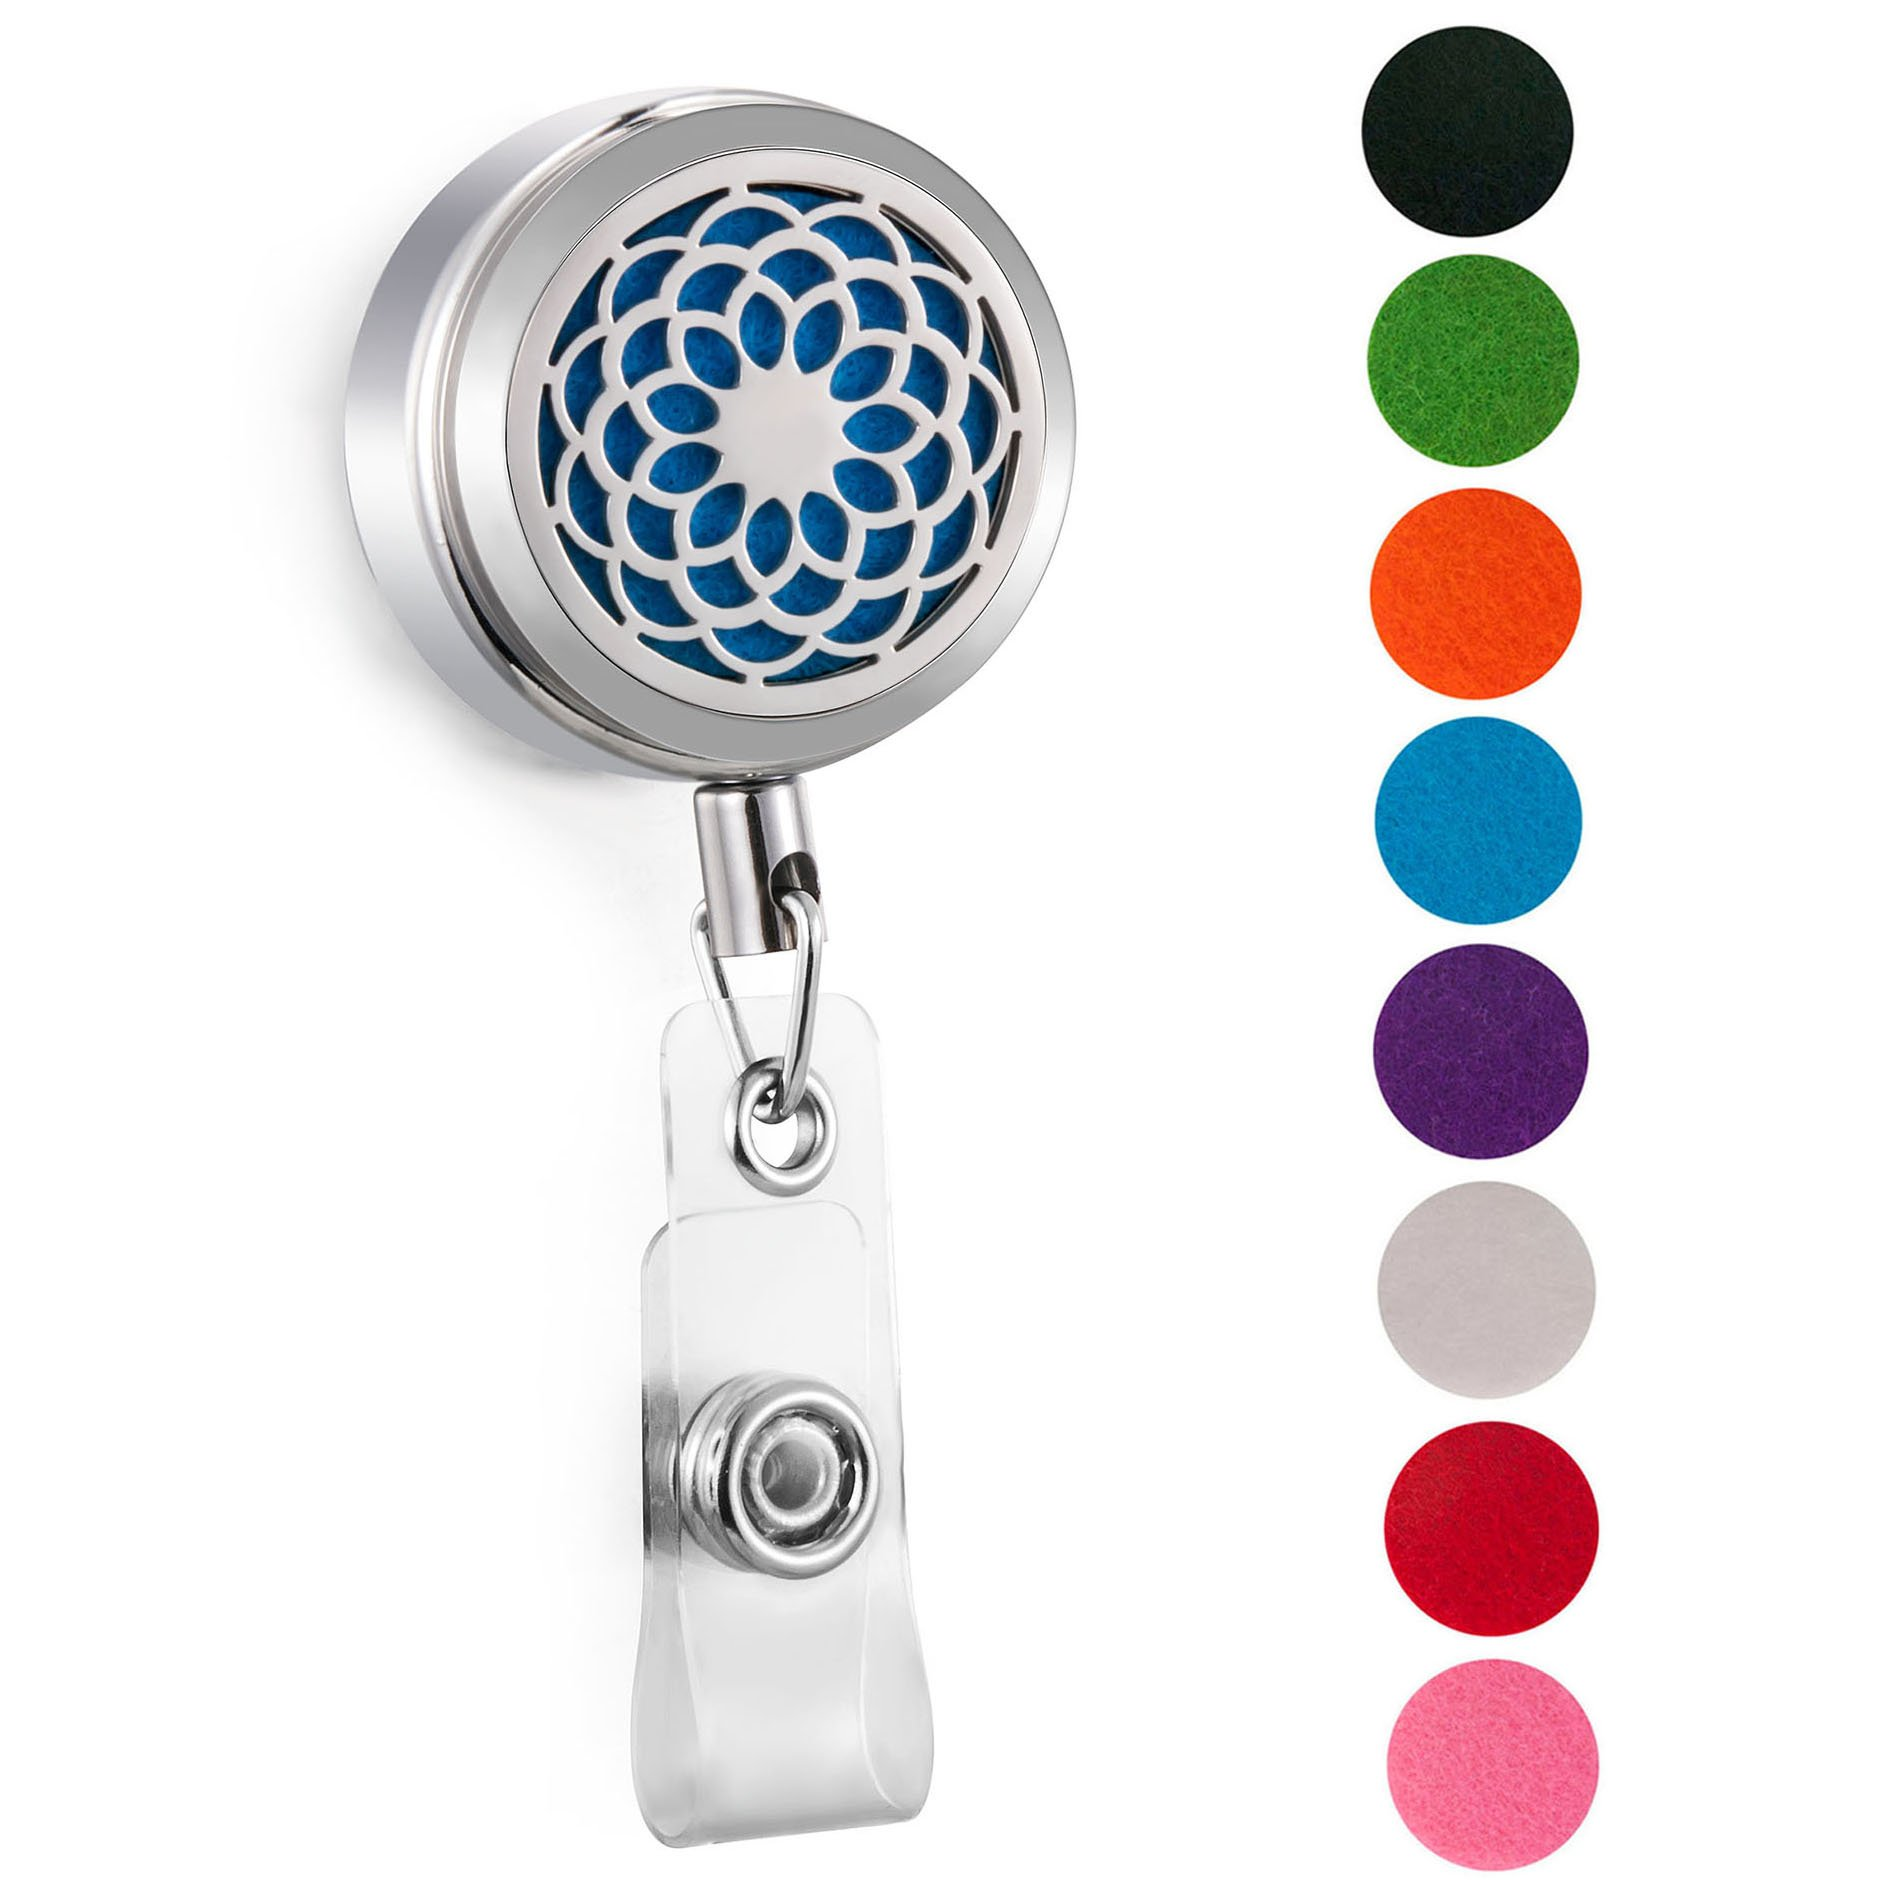 CAPTTE Aromatherapy Essential Oil Badge Diffuser for Nurse Wear-Resisting and Retractable Badge Holder Reel Clip On Id Card Holders with Sunflower